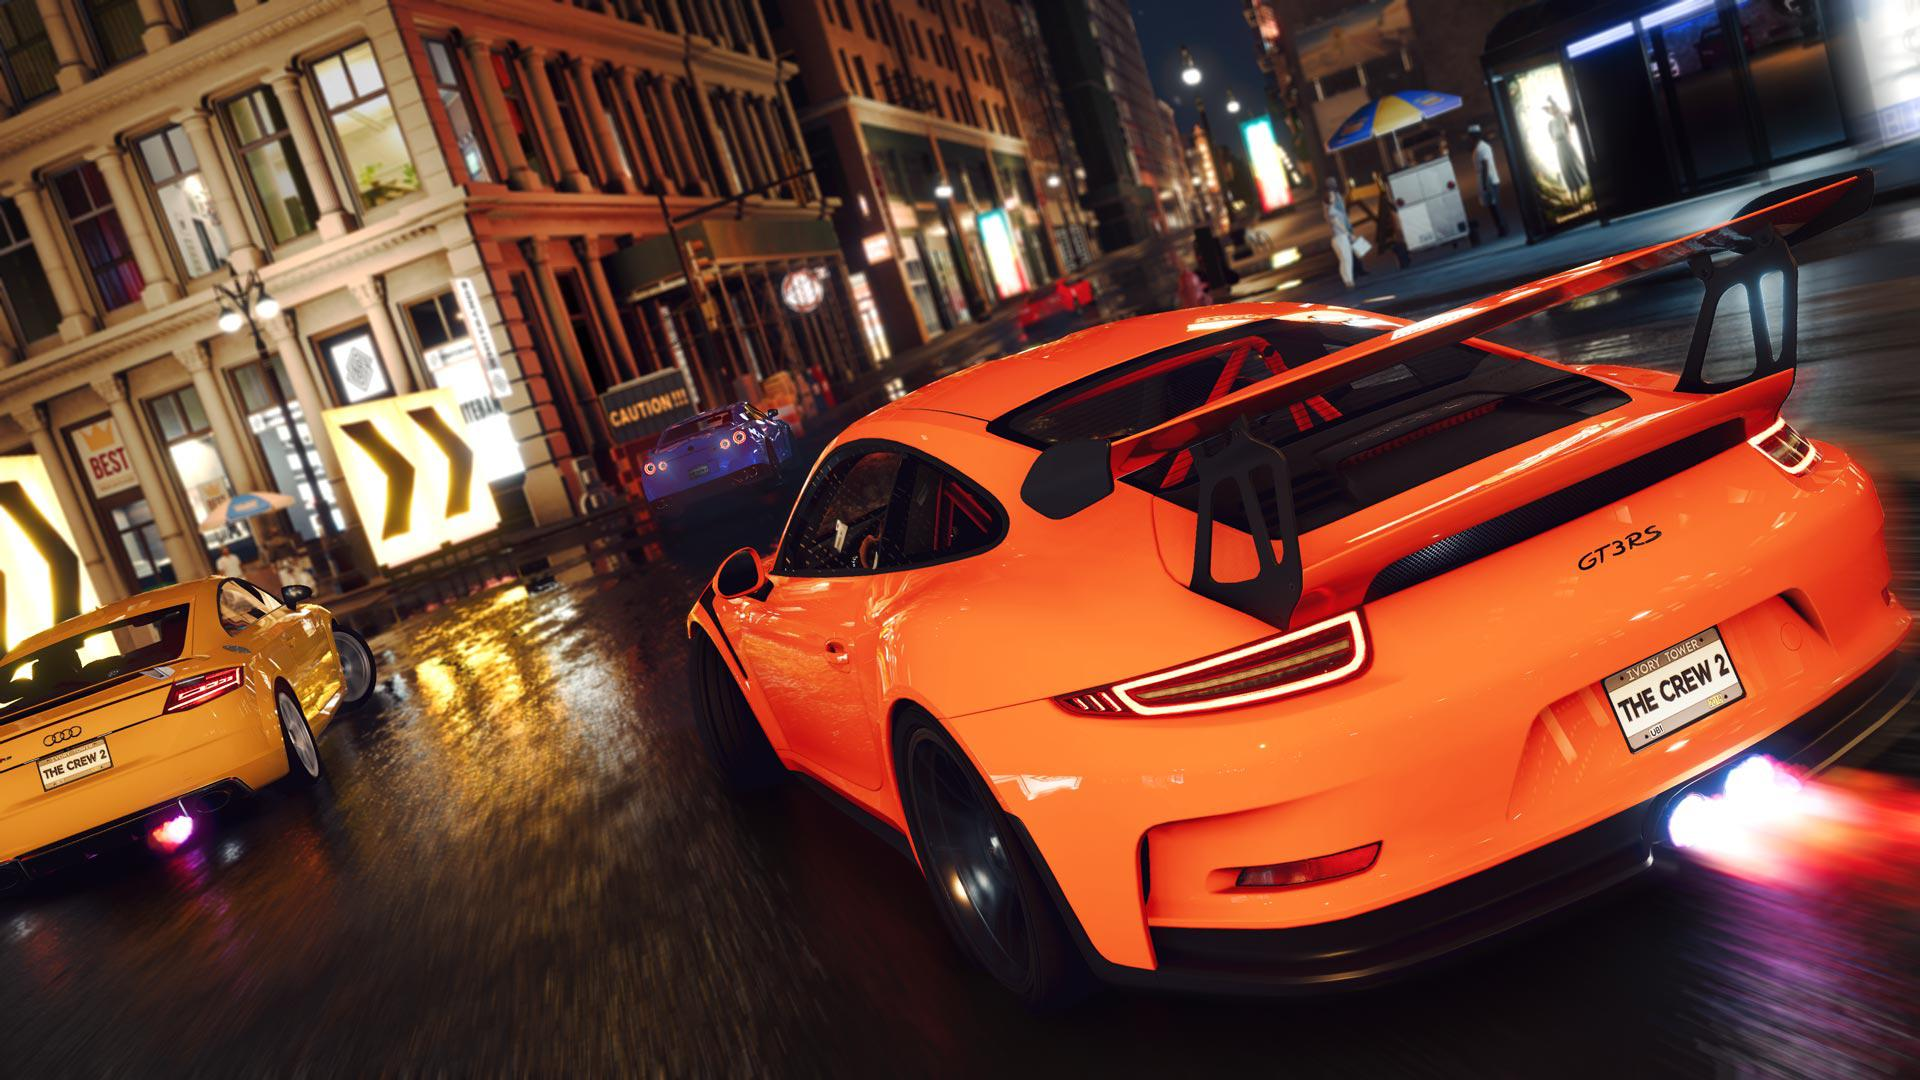 The Crew 2 has a day and night cycle and a vast open world